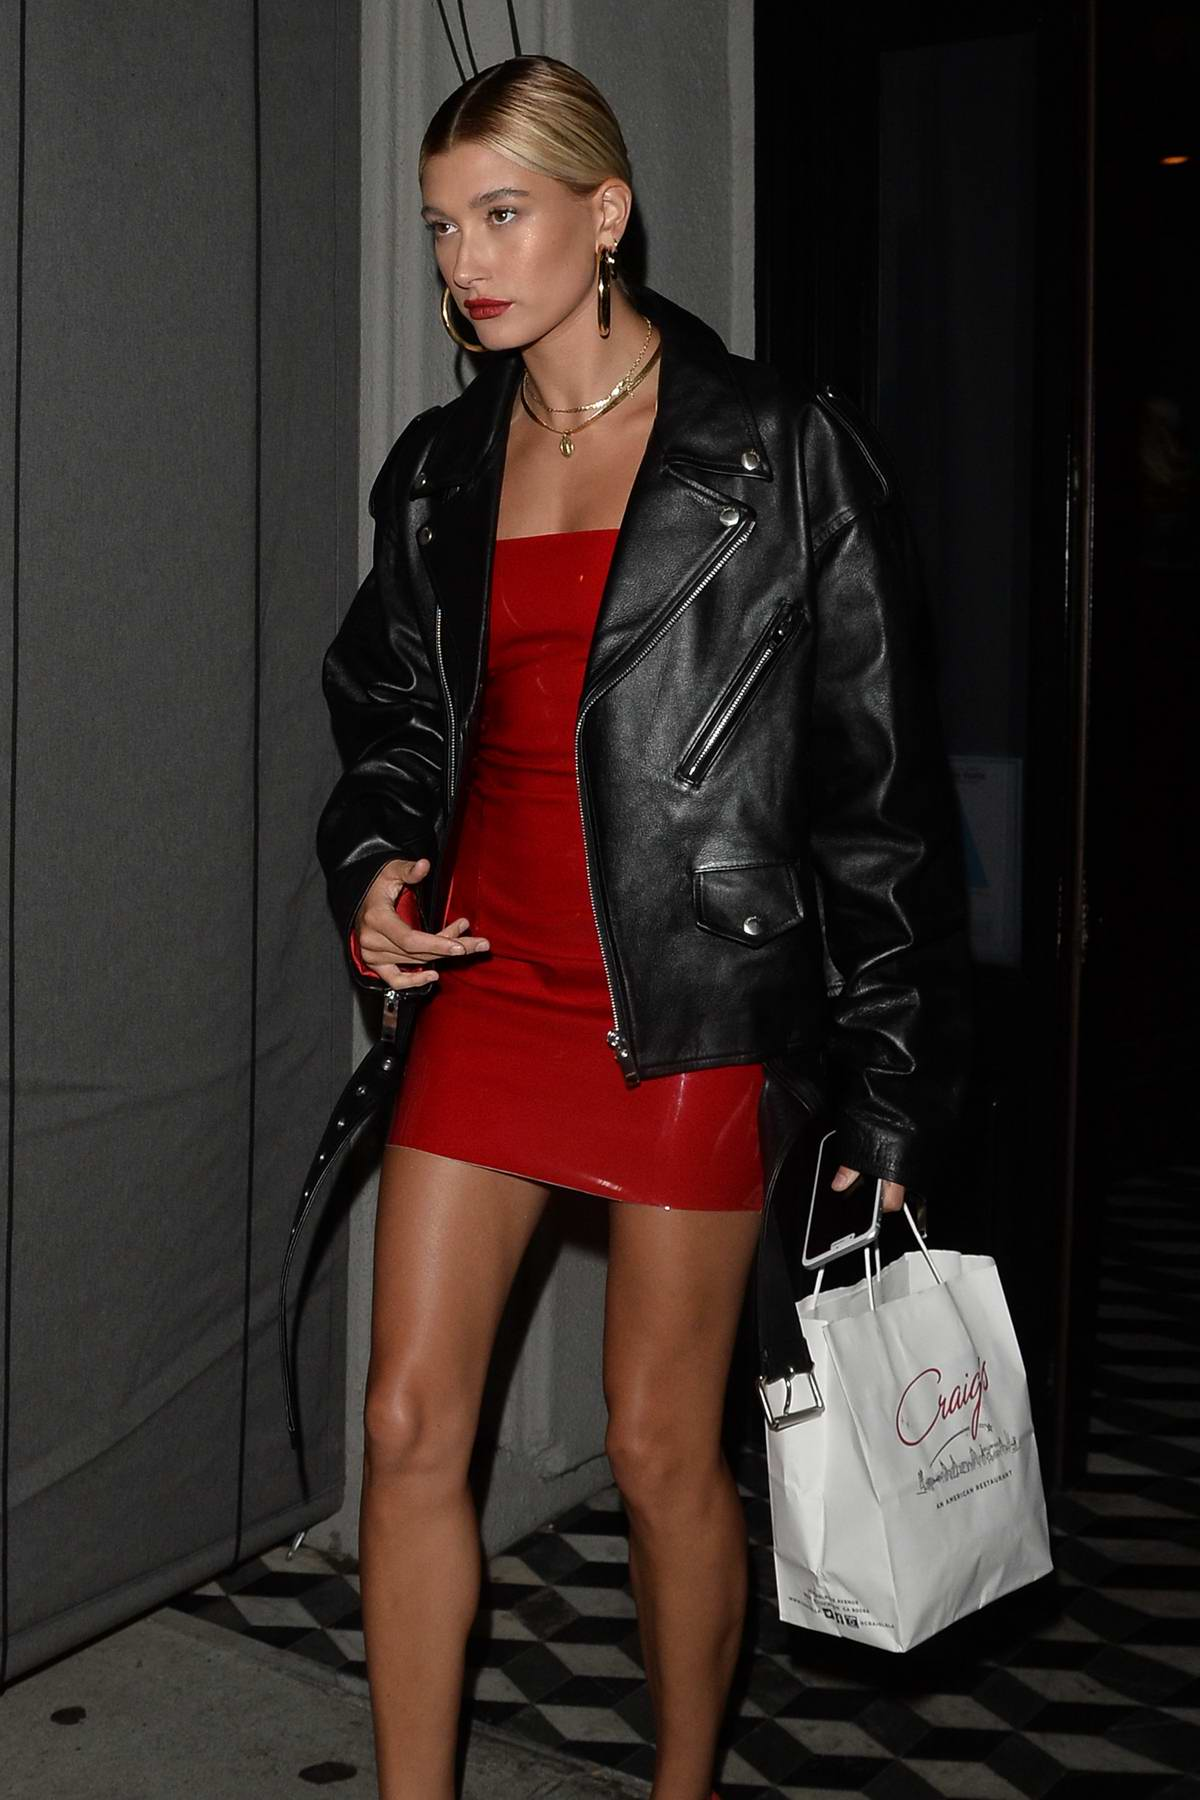 Hailey Baldwin leaving after a late night Dinner at Craigs in West Hollywood